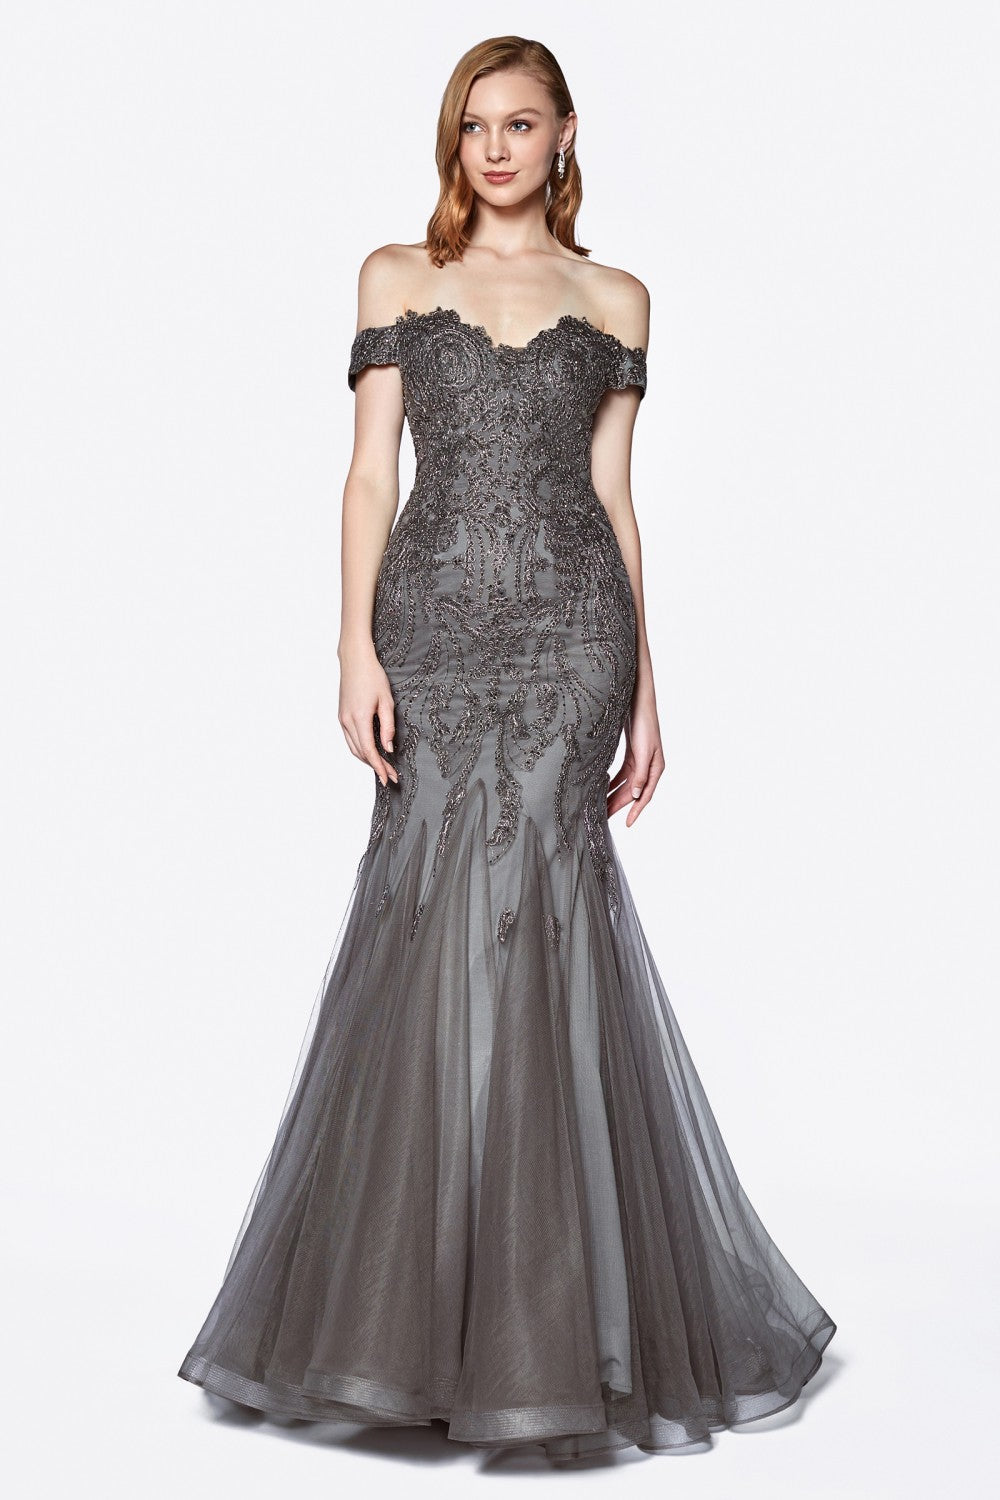 Off The Shoulder Lace And Tulle Mermaid Gown With Horsehair Trim And Beaded Details